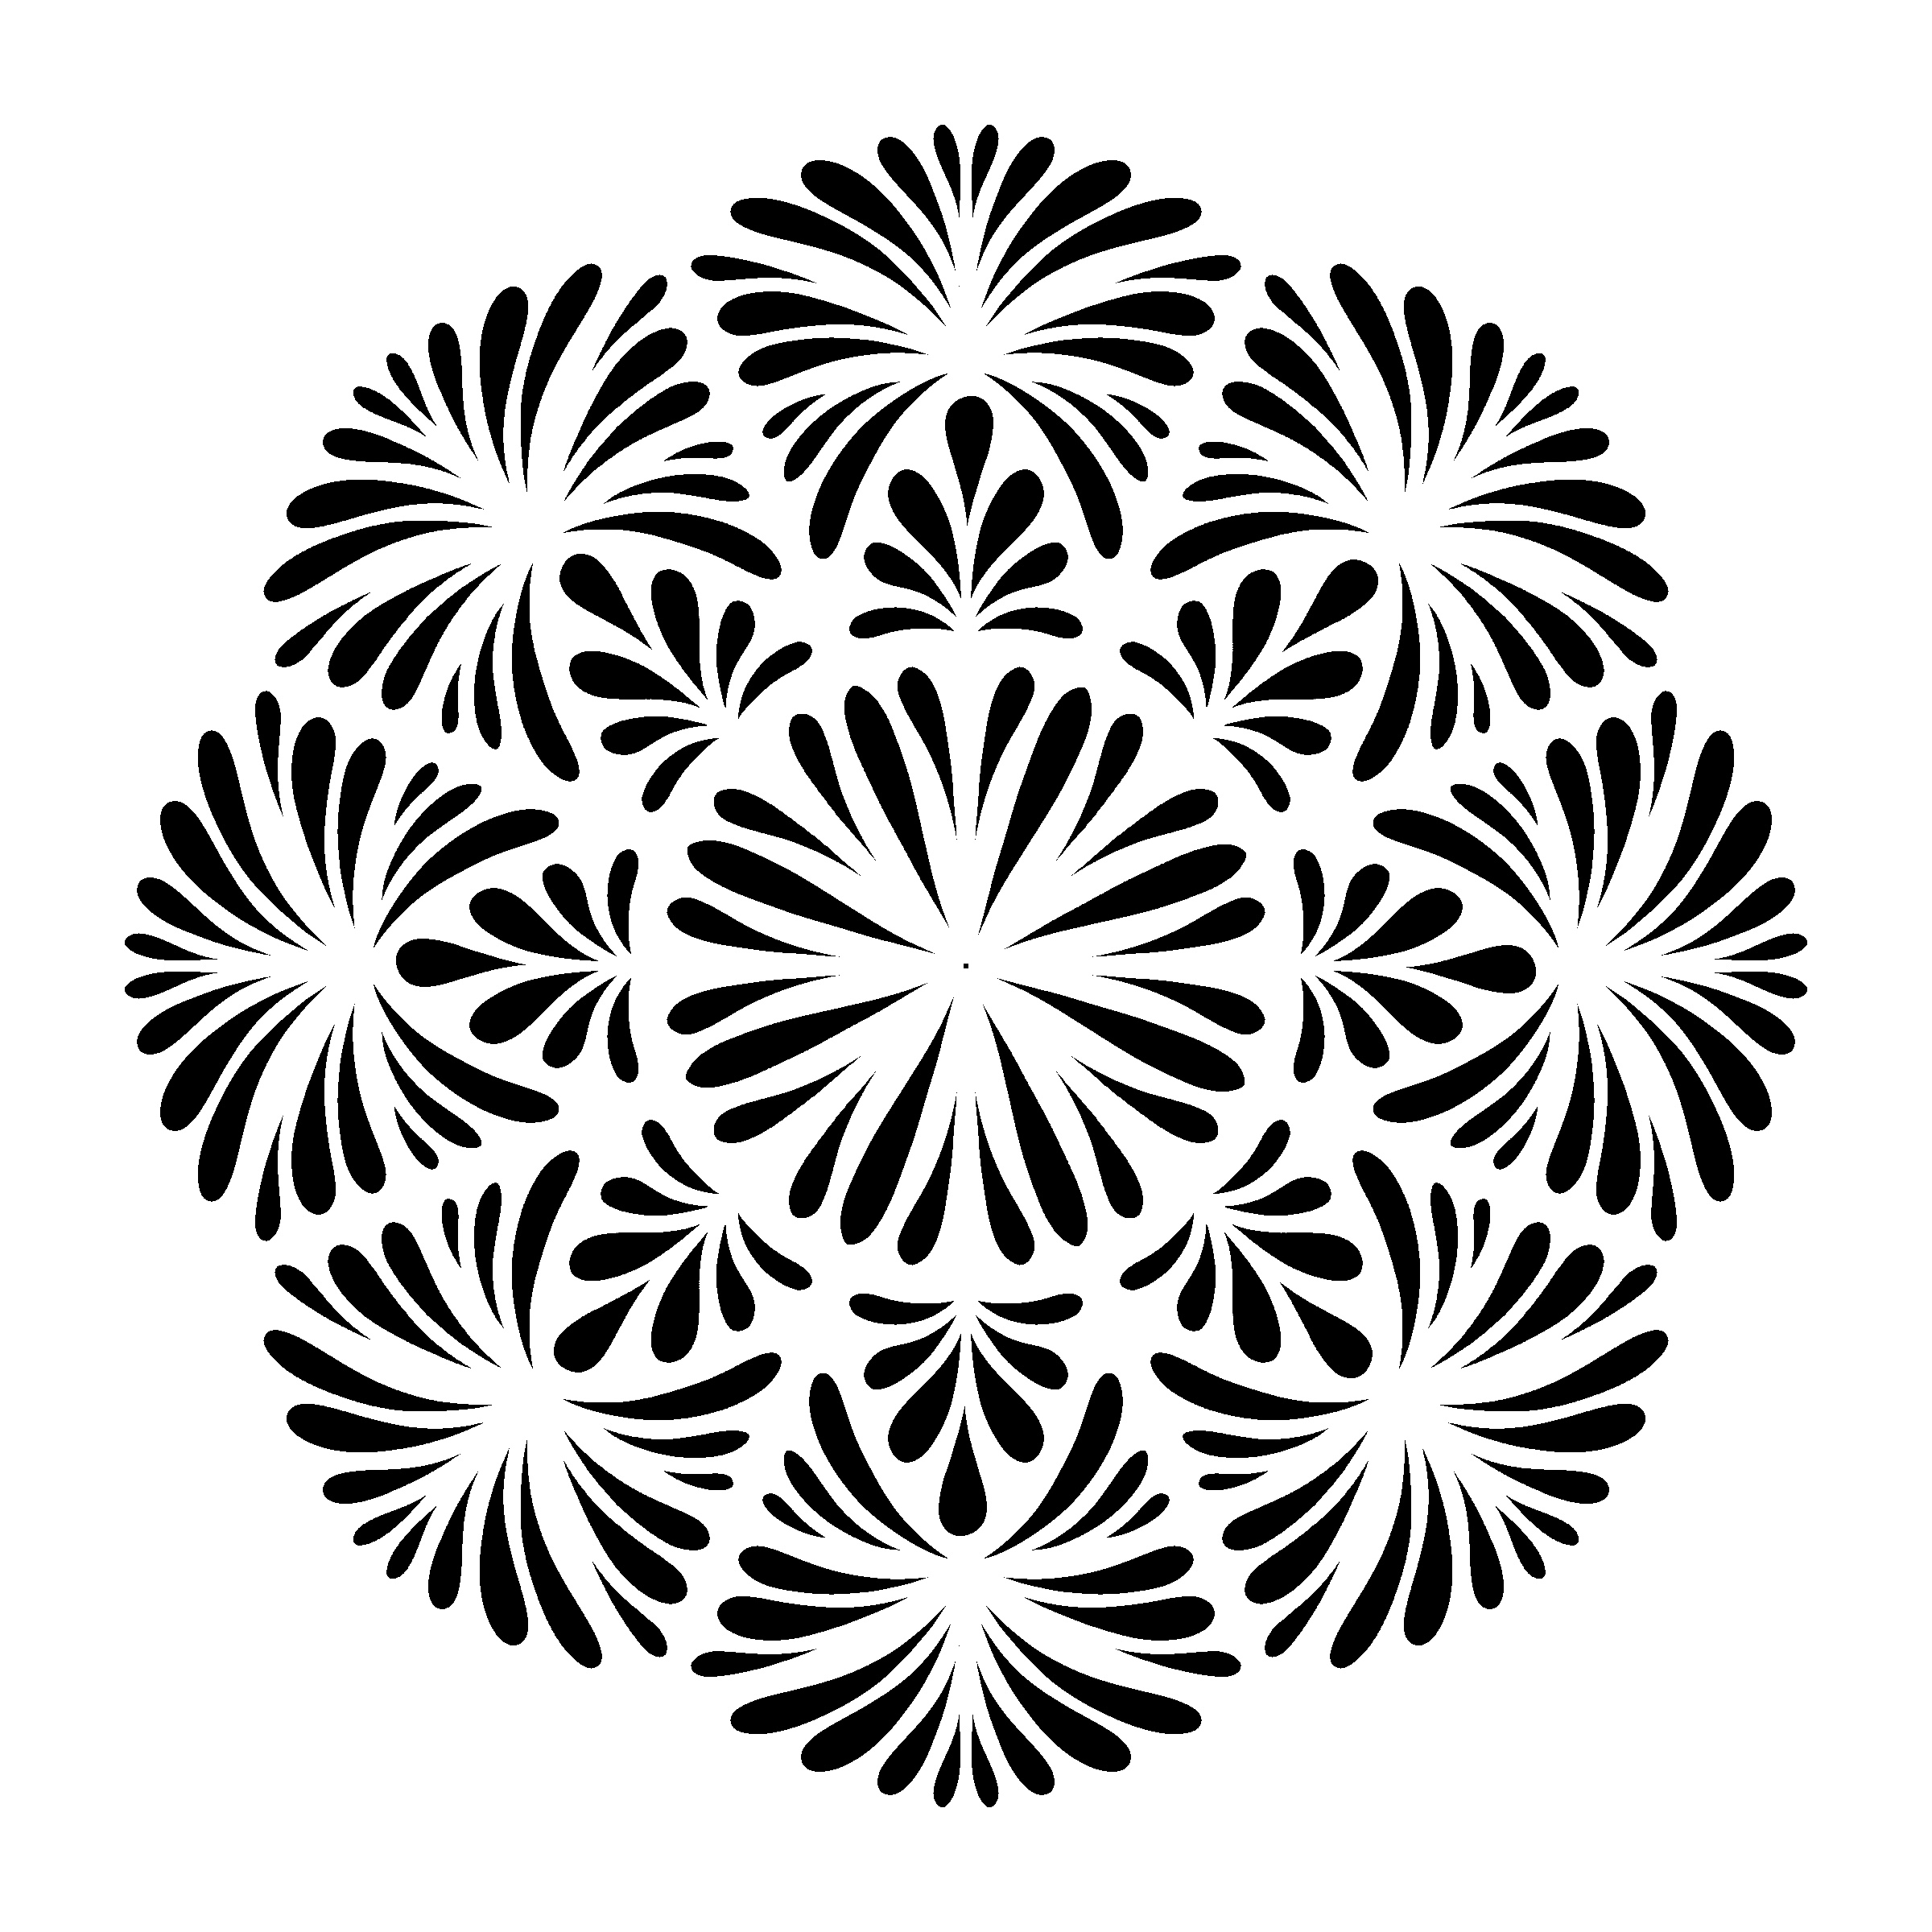 How to Draw A Mandala with One Simple Shape - JSPCREATE